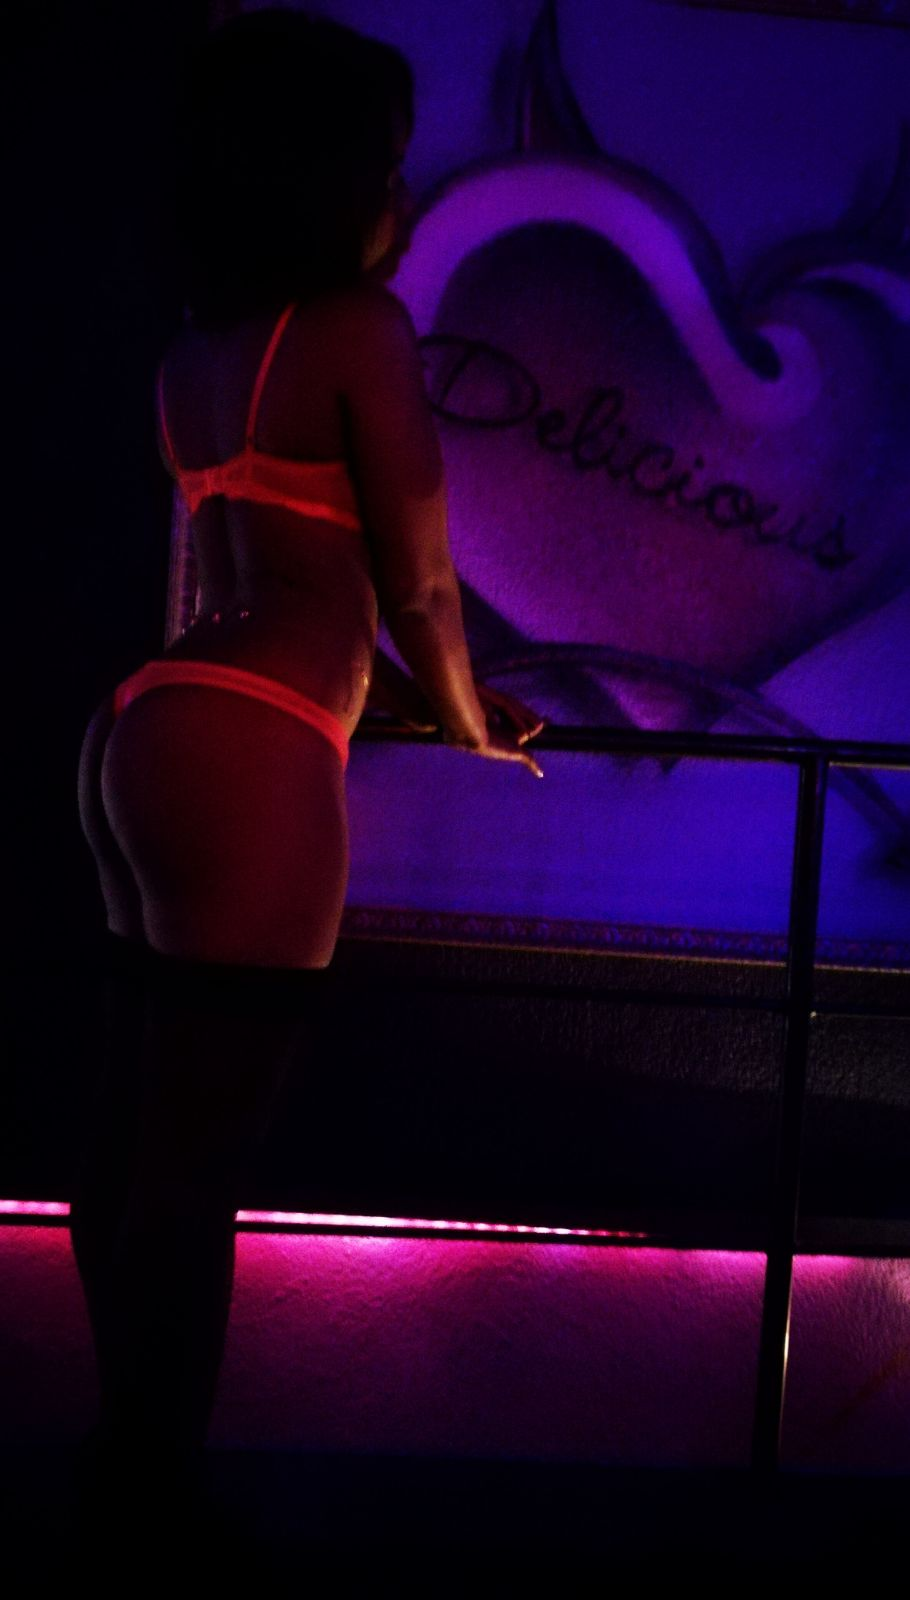 Maya escort gen ve salon erotique - Salon erotique suisse ...